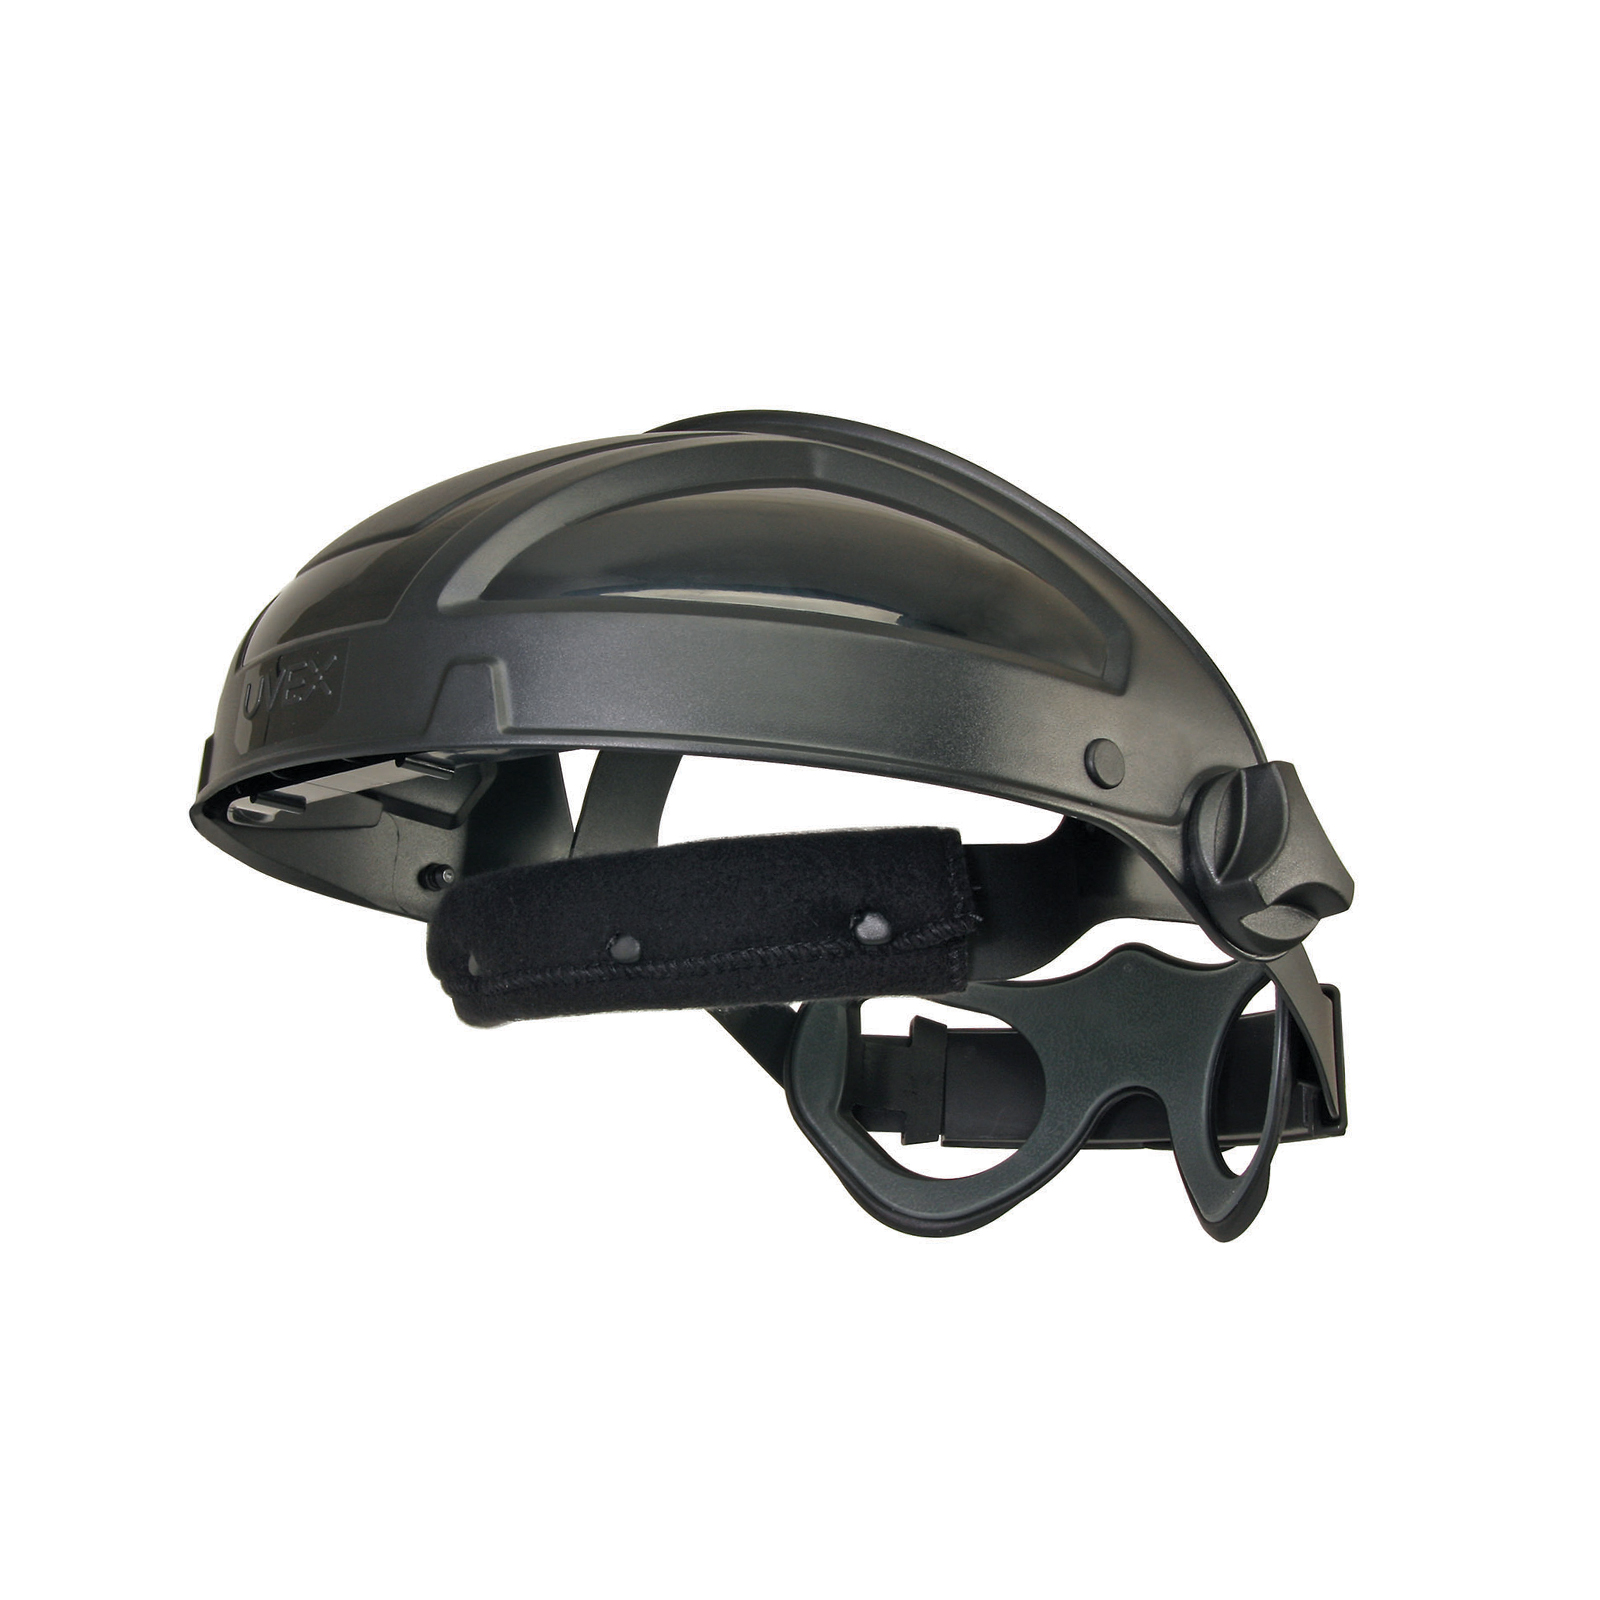 uvex_turboshield_s9500-45-Securovision